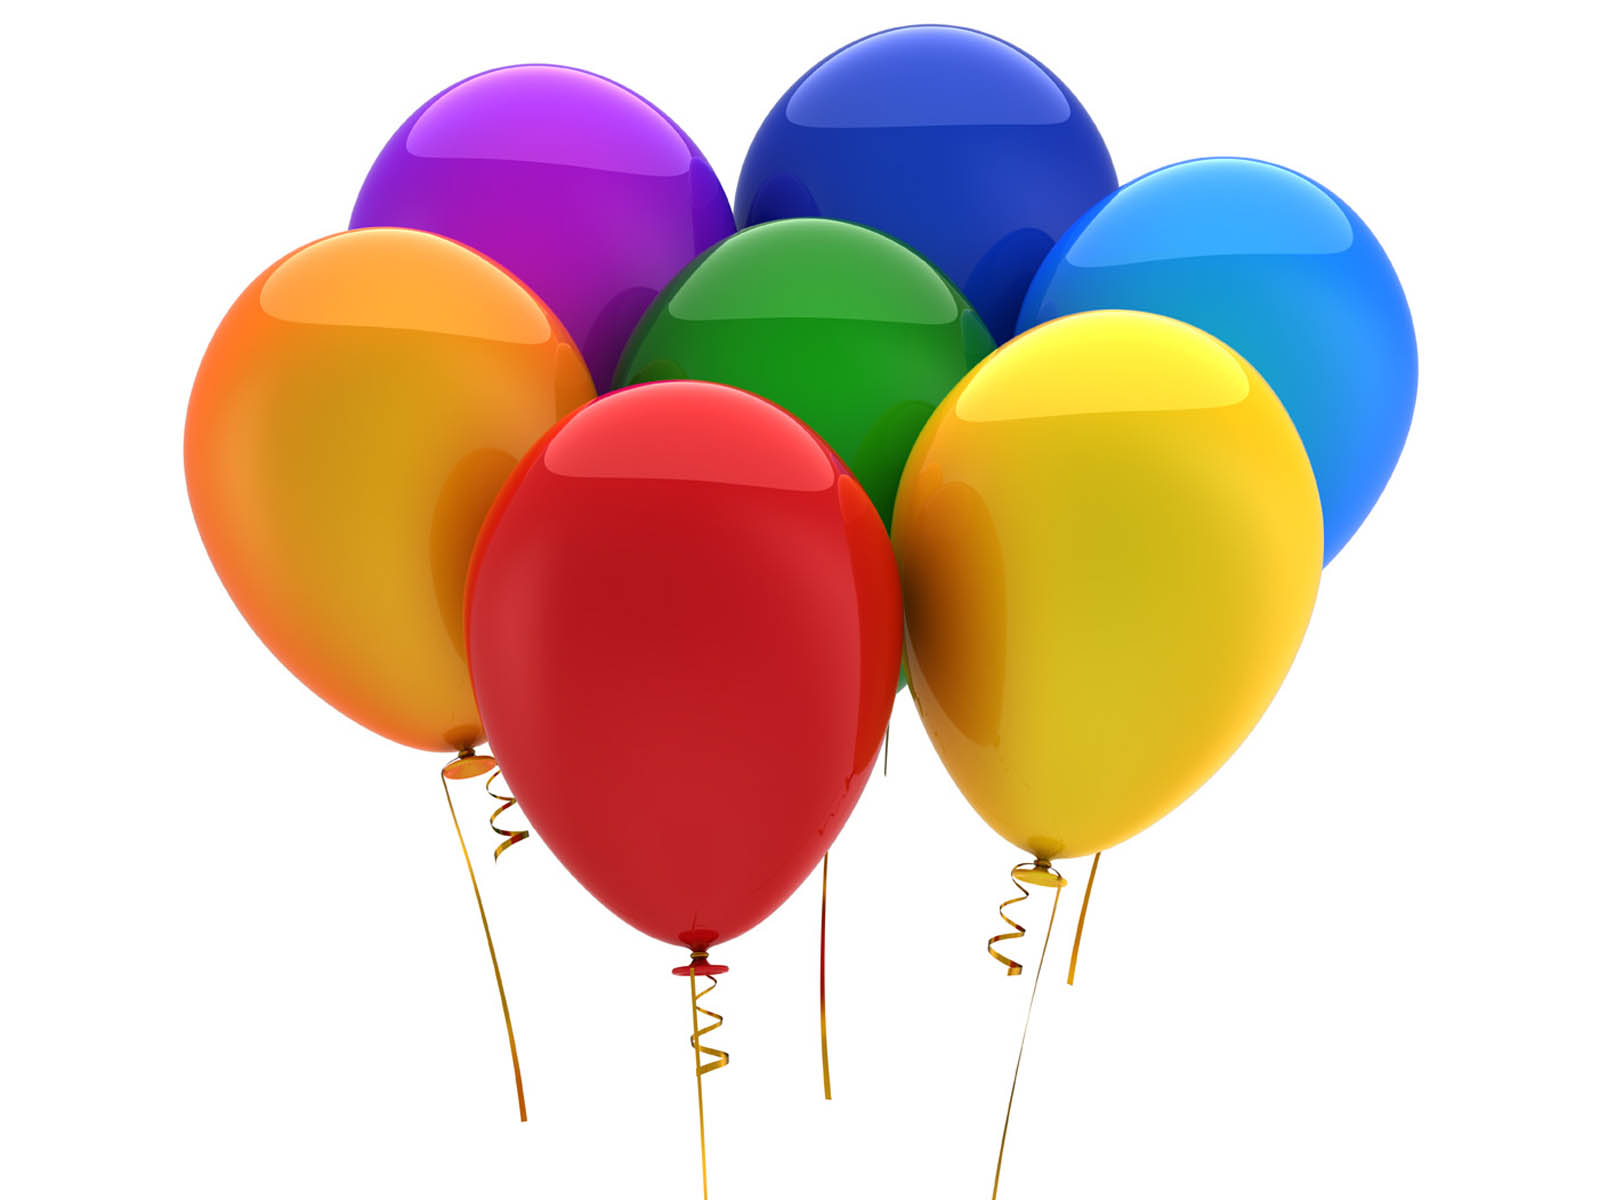 Tag Balloons Wallpapers Images Photos Pictures and Backgrounds for 1600x1200